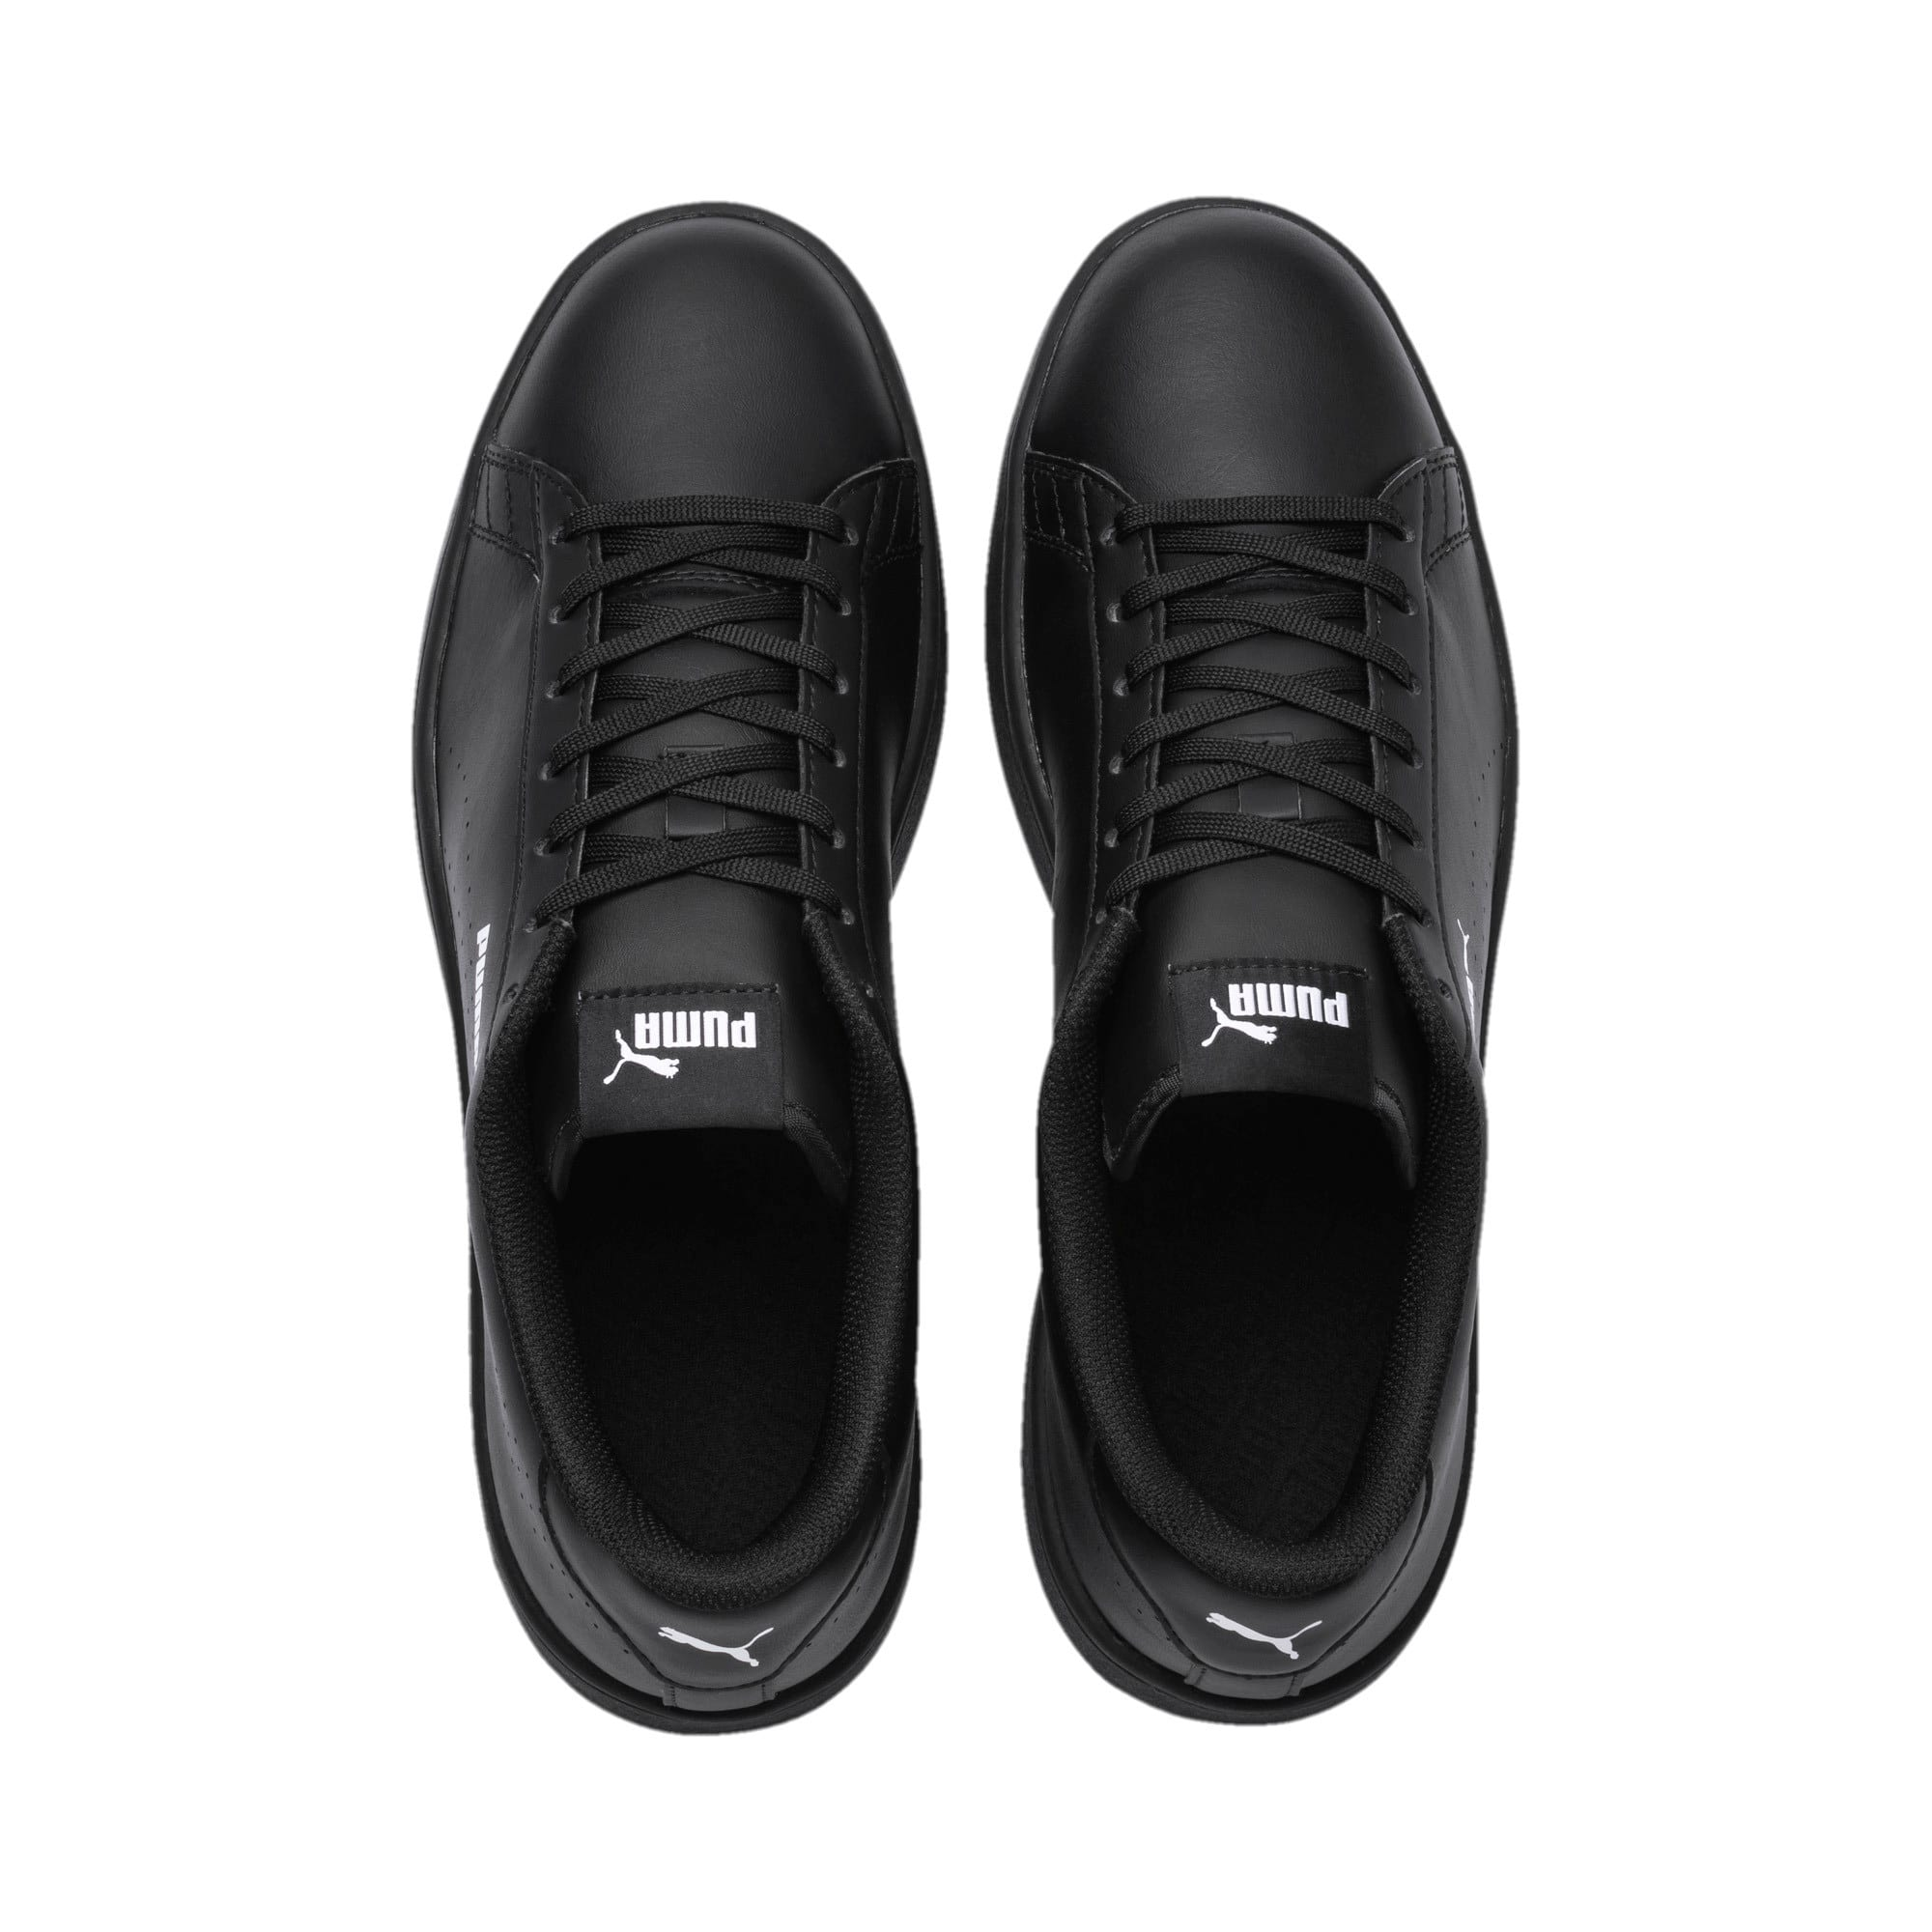 Thumbnail 6 of Smash v2 L Perf Trainers, Puma Black-Puma Black, medium